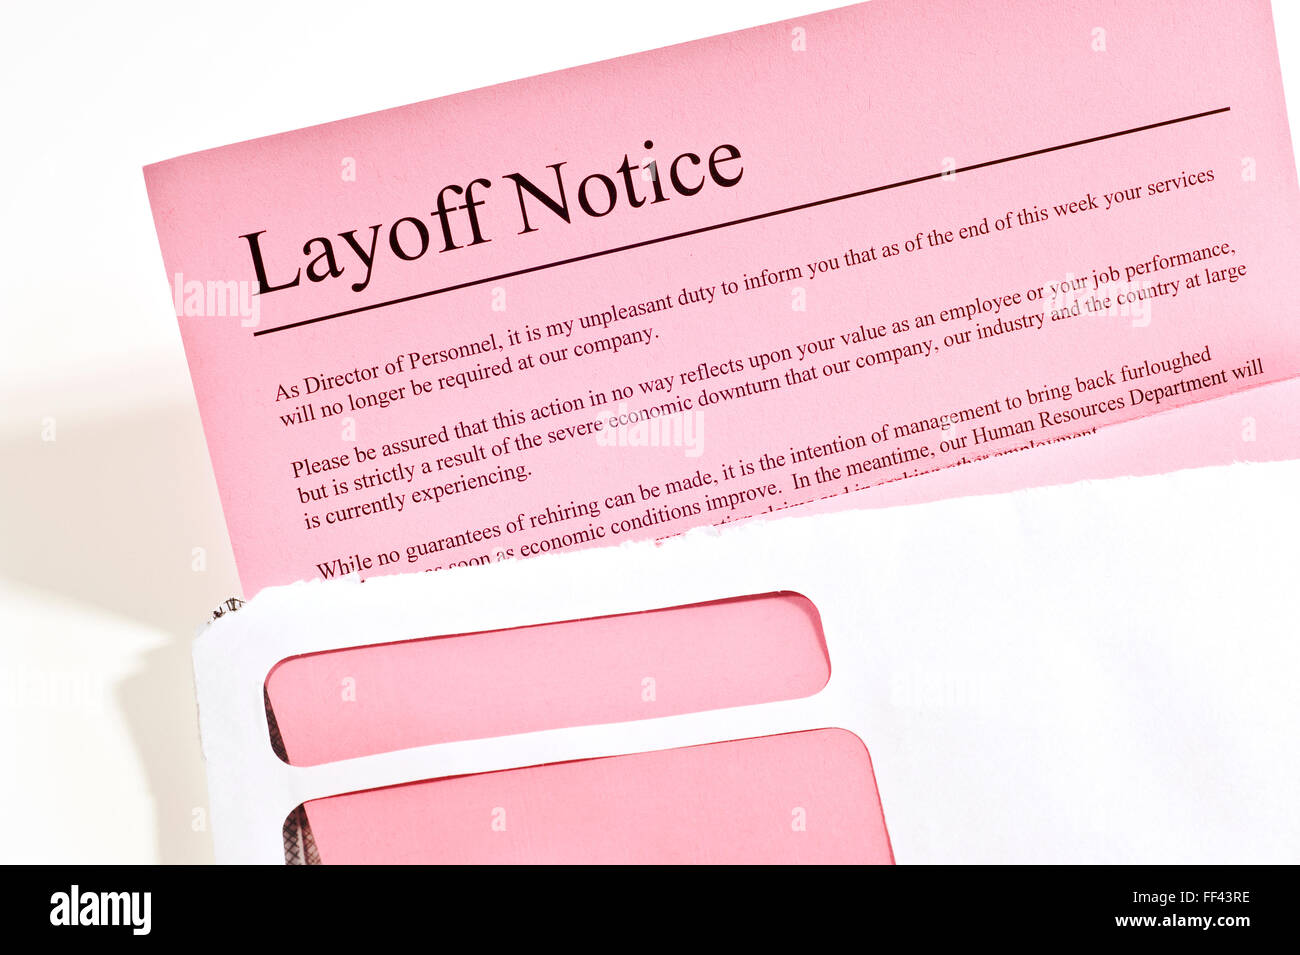 Layoff Notice - Stock Image